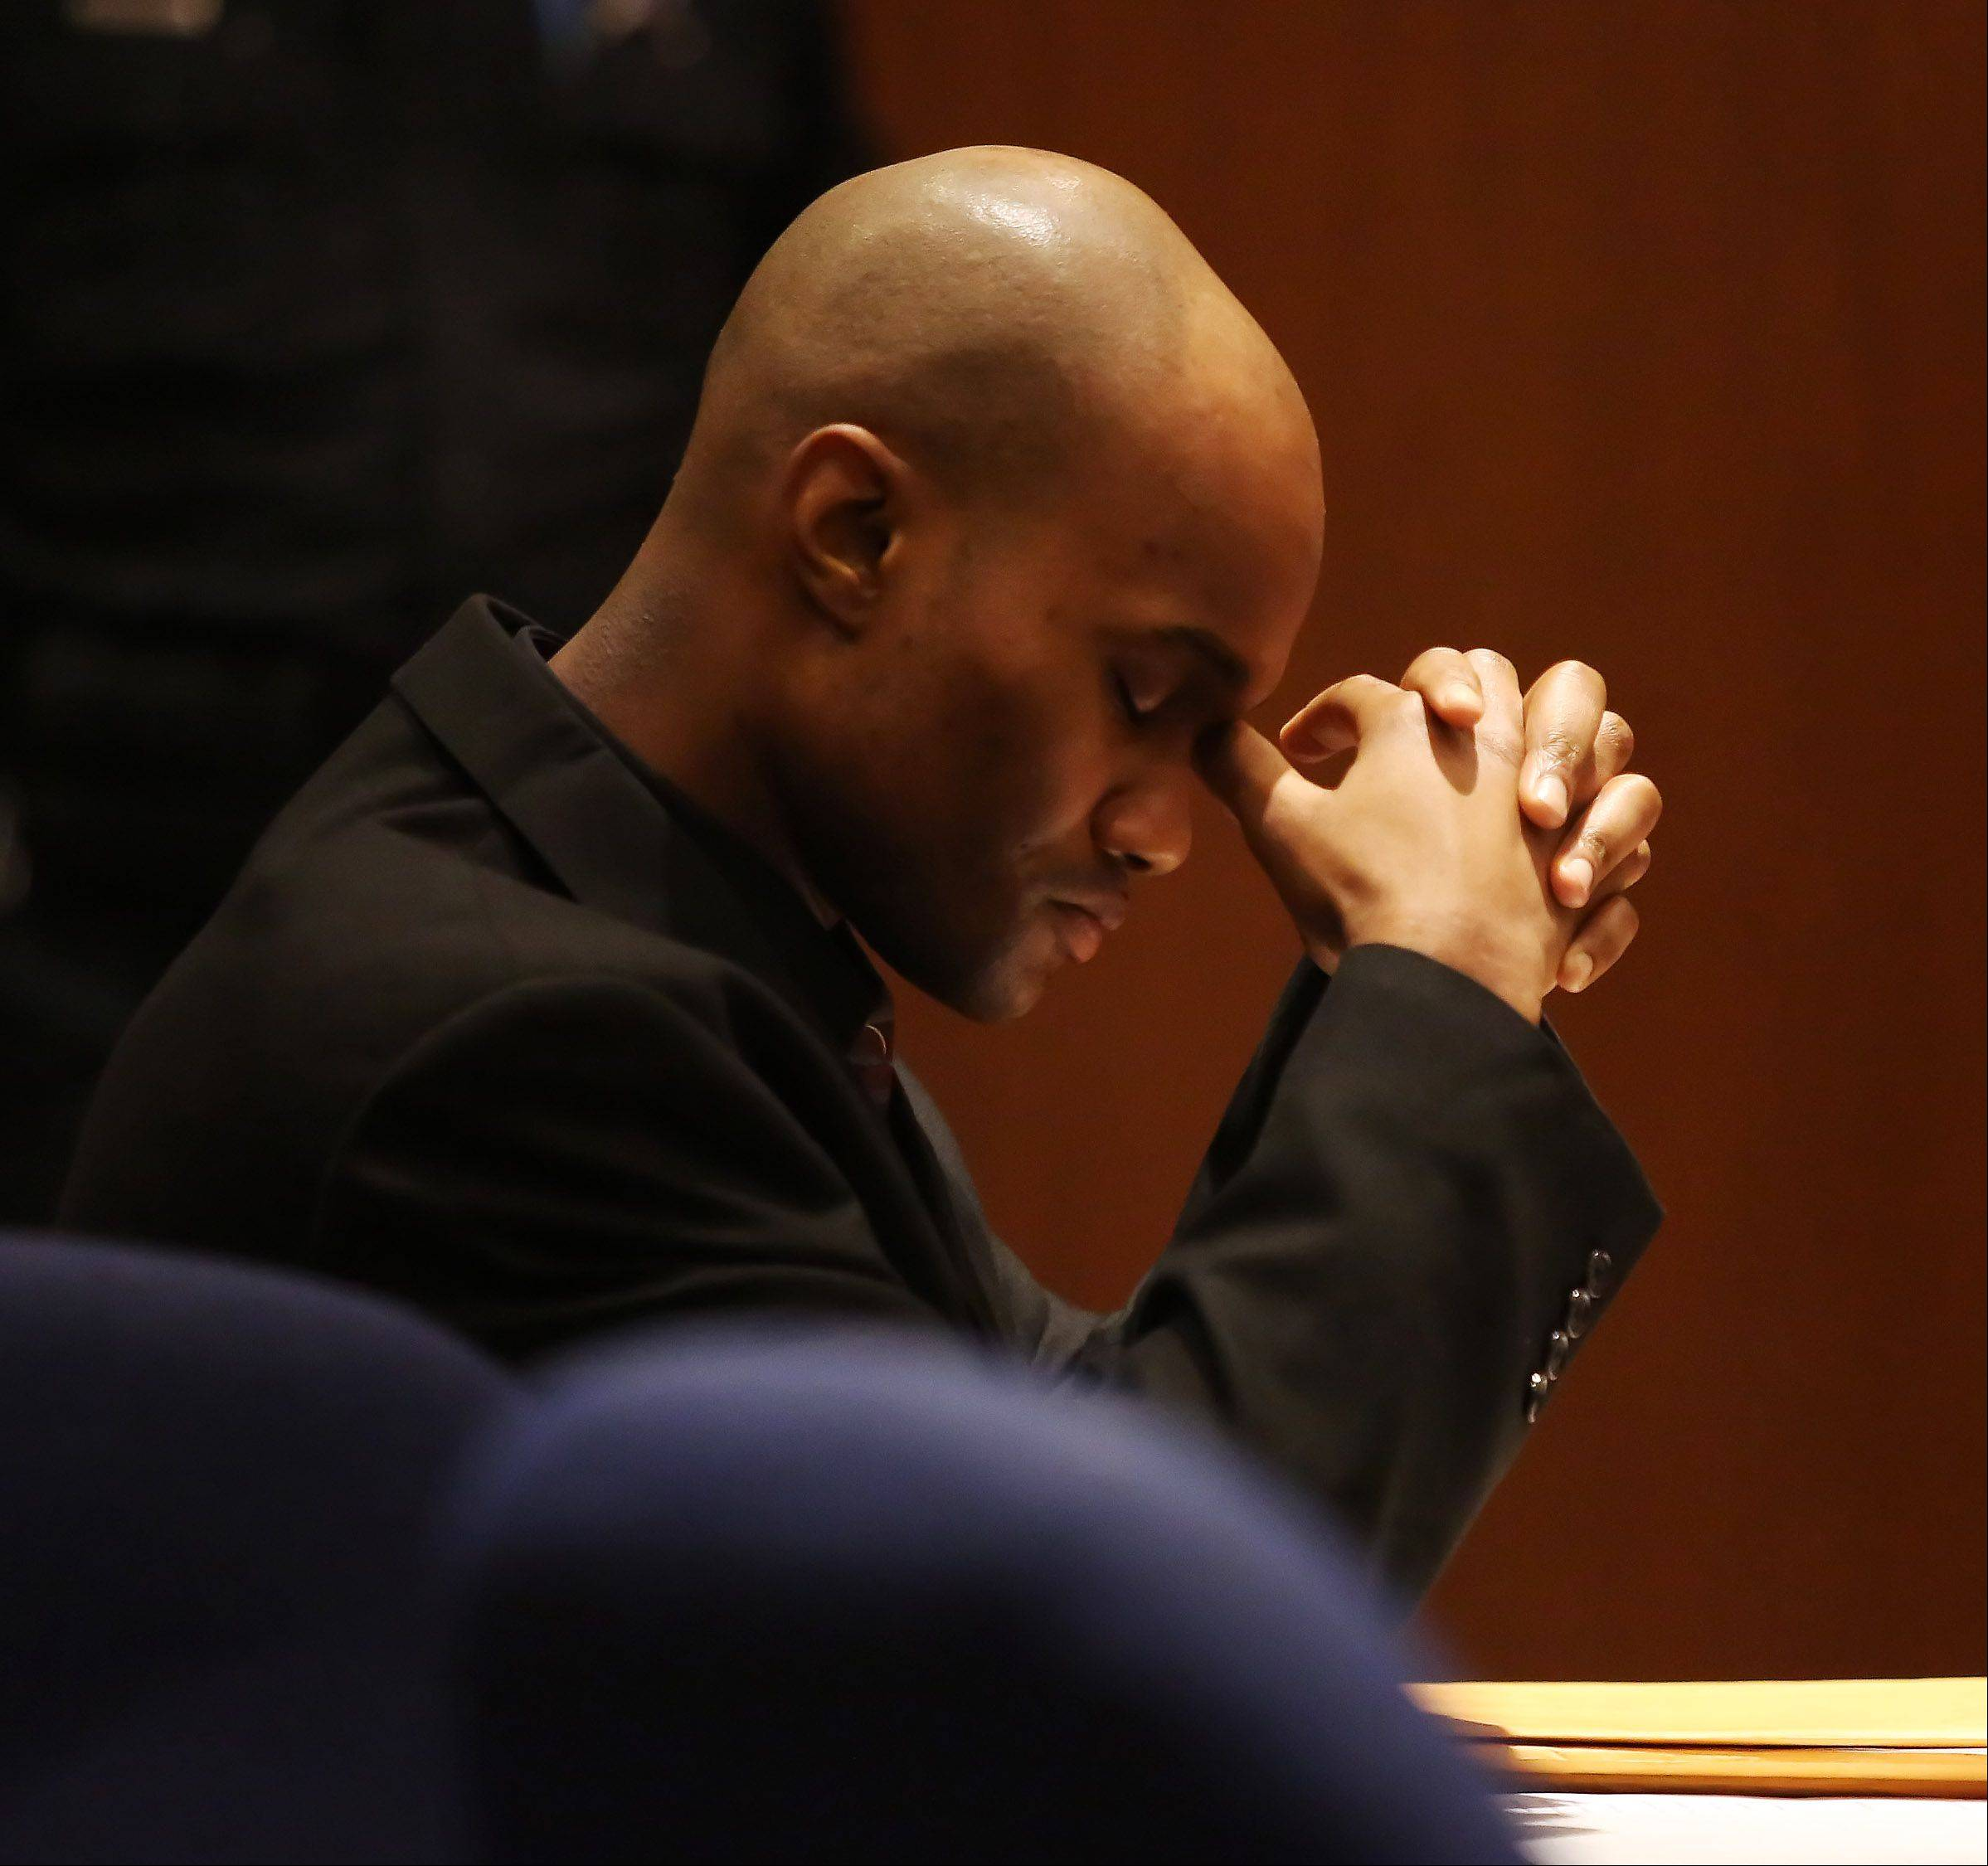 Montago Suggs, of Kenosha, Wis., sits at his table during his murder trial Tuesday at the Lake County courthouse in Waukegan. Suggs is accused of killing Melinda Morrell of Round Lake Park during a robbery at a check cashing store in Waukegan in 2007.